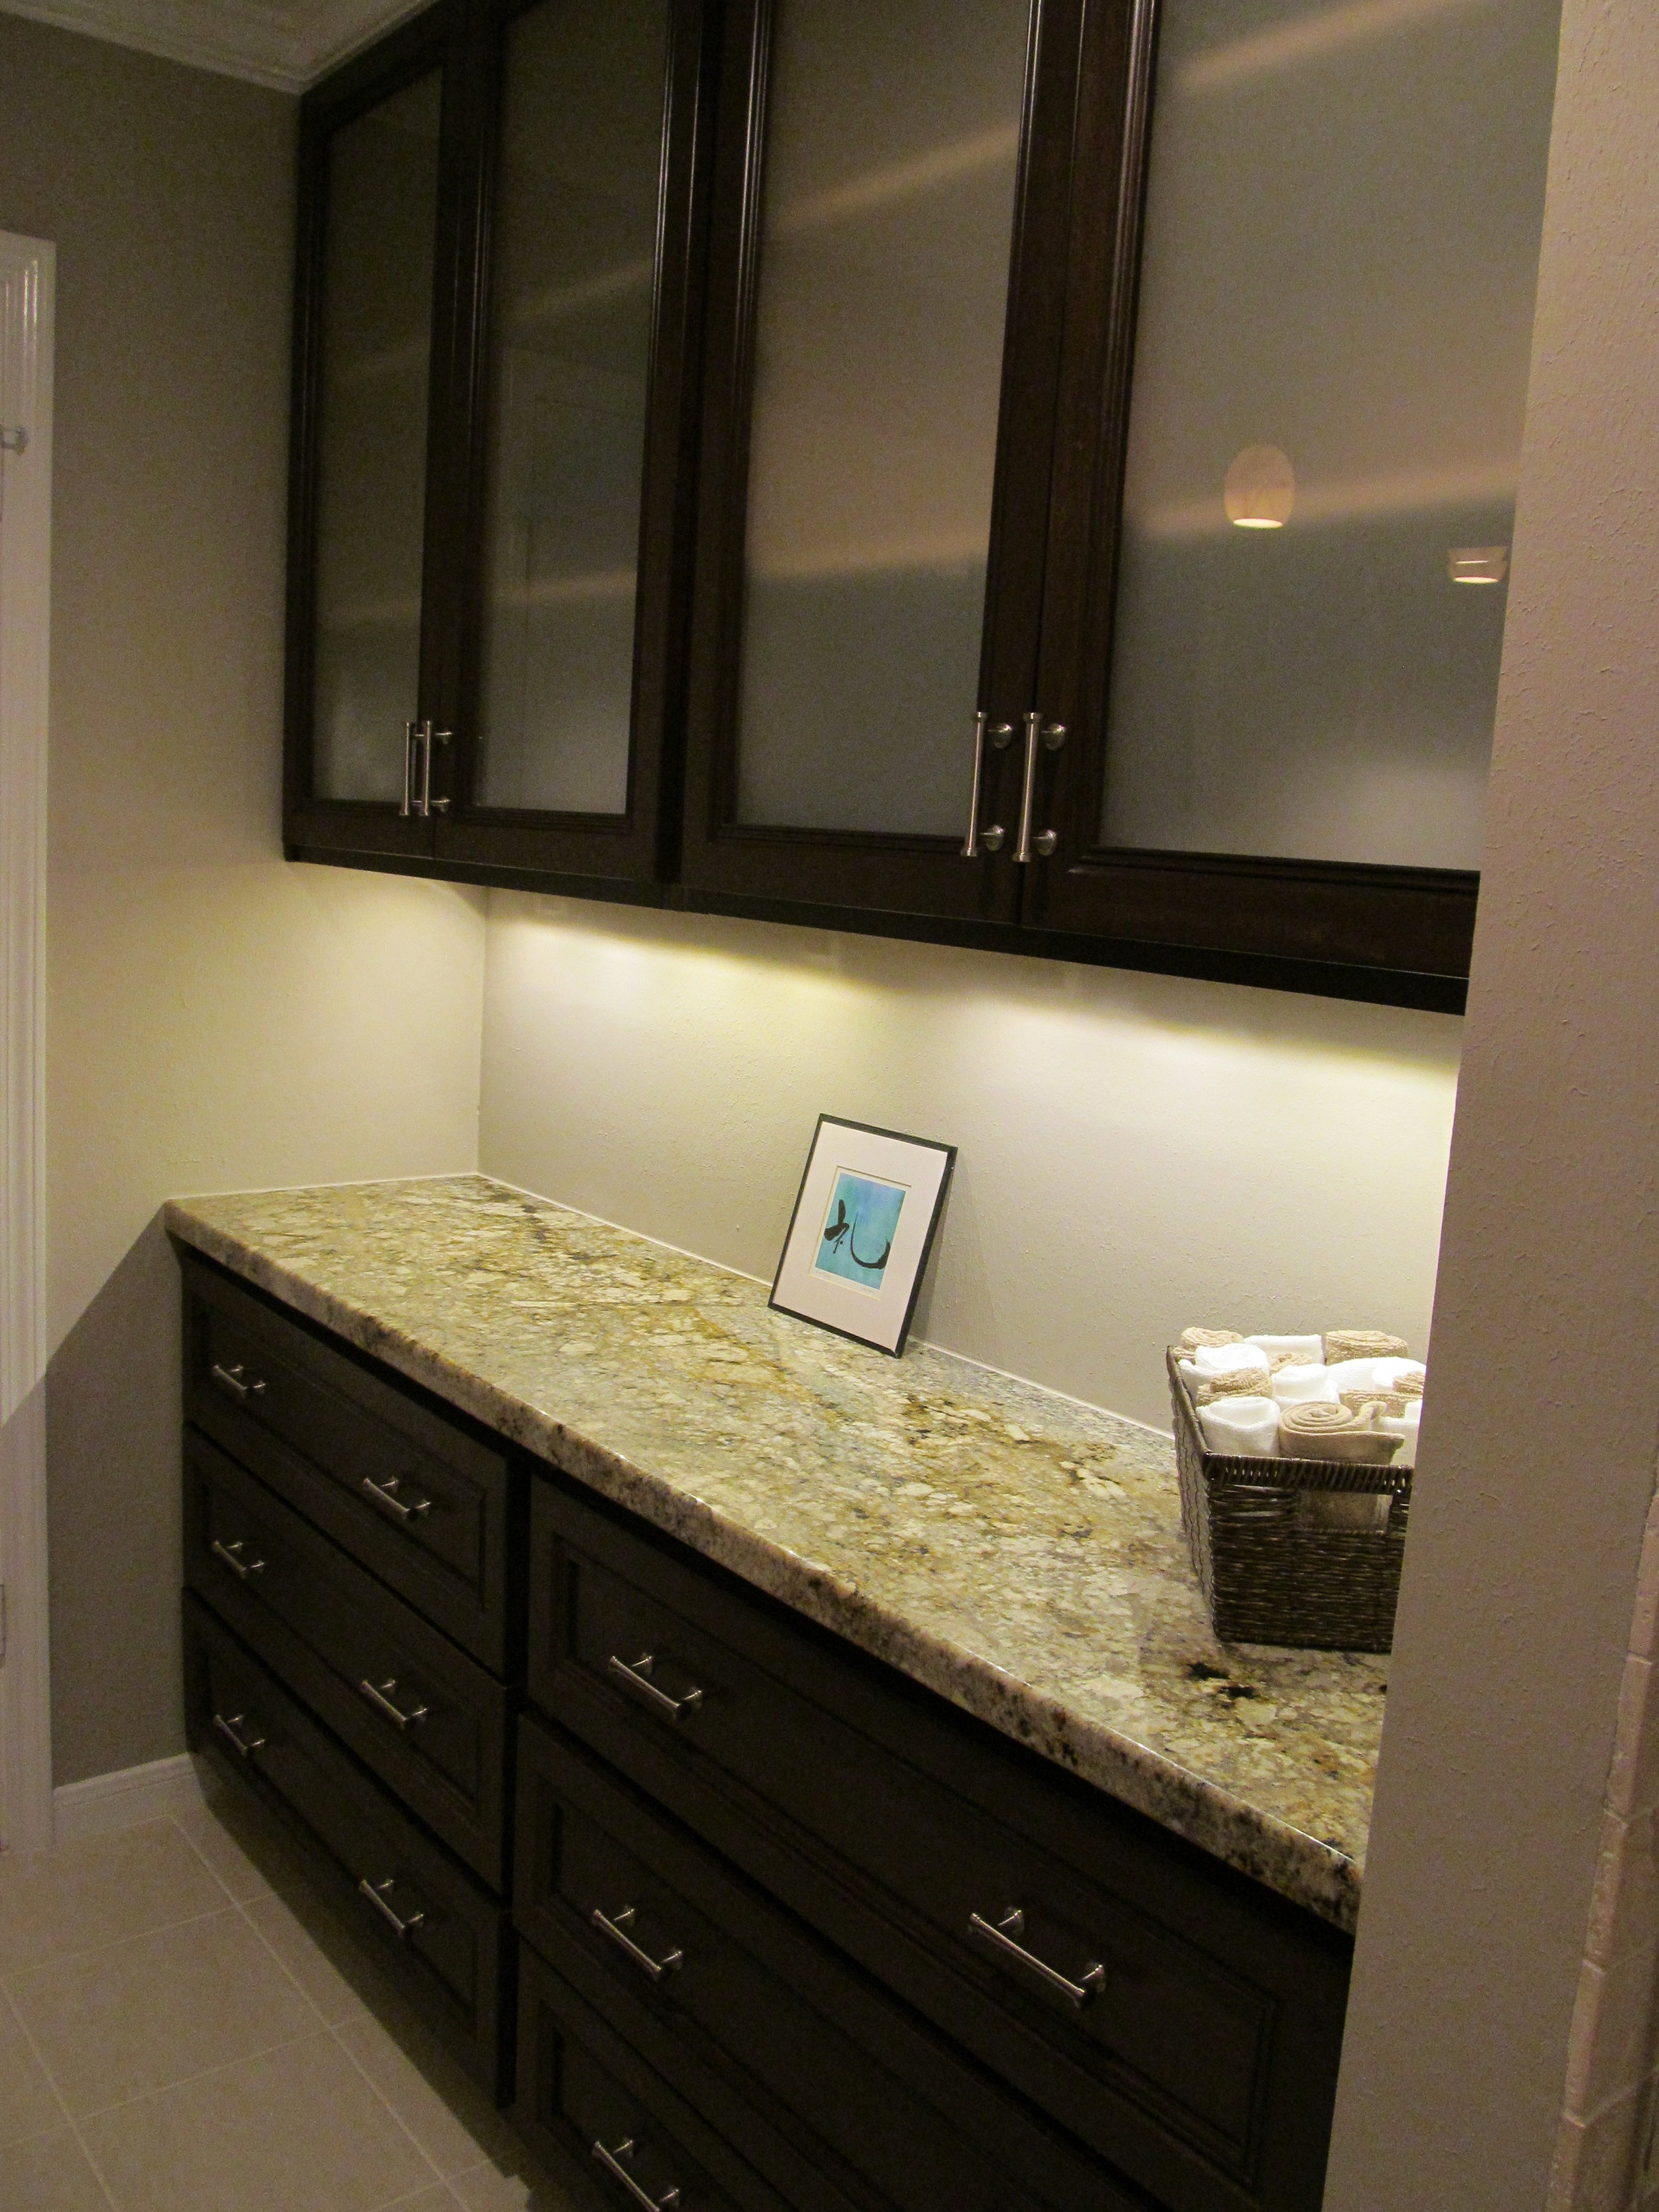 This bank of cabinetry was designed to address homeowners' needs.JPG